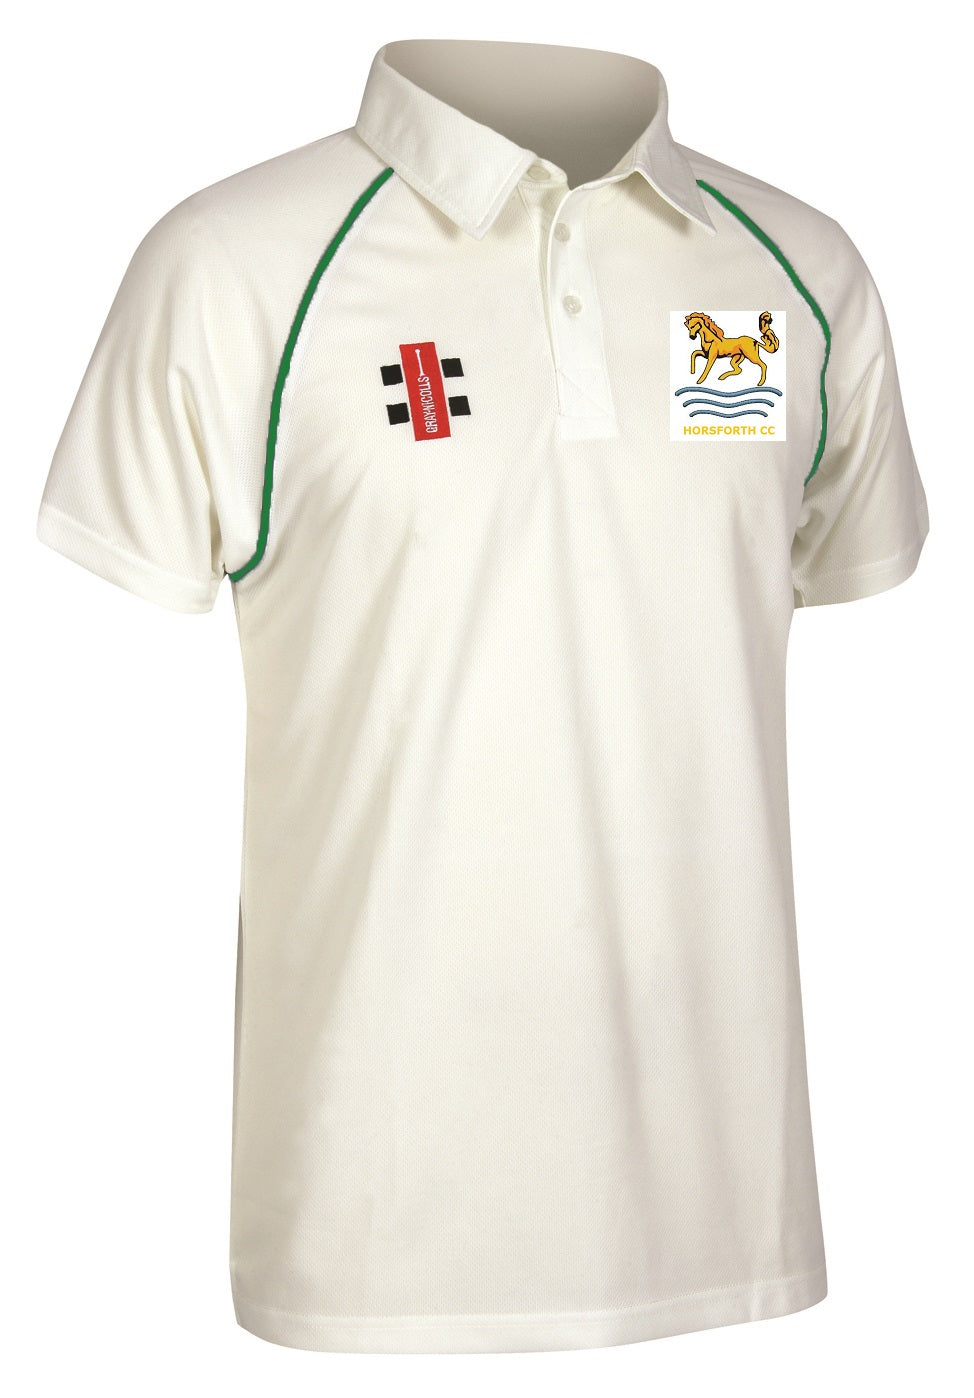 Horsforth CC Juniors Shirt